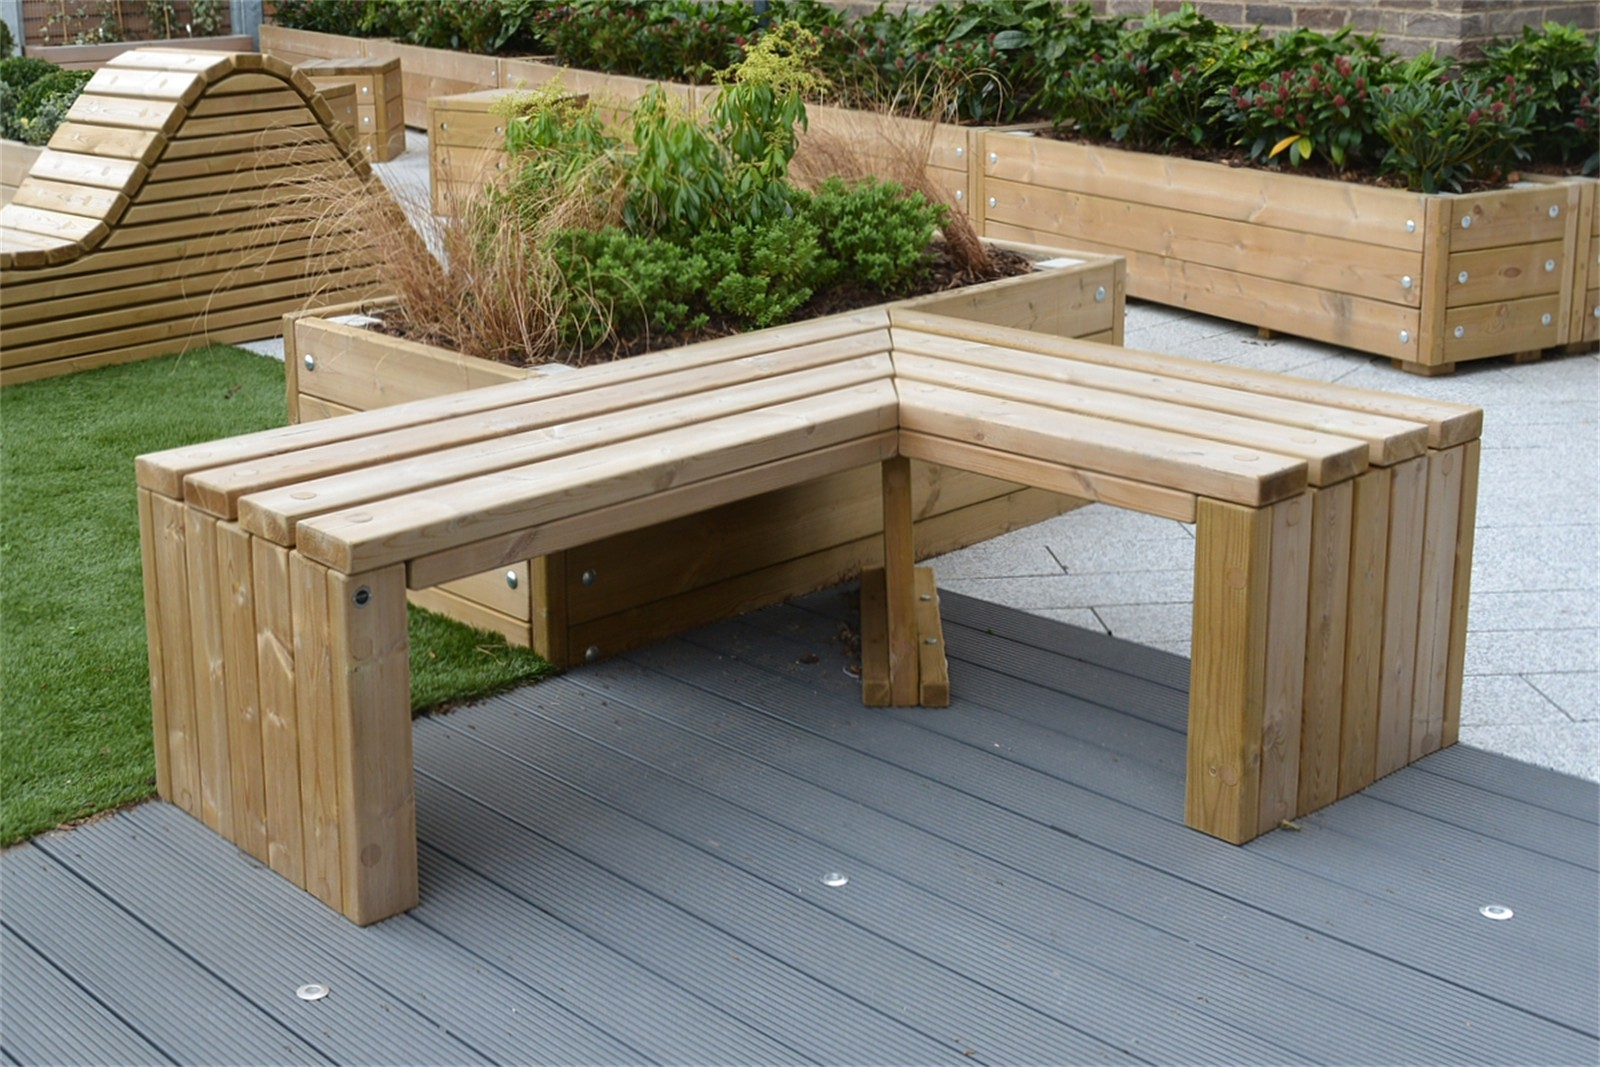 60sro33 - Rochford 565 mitred timber benches